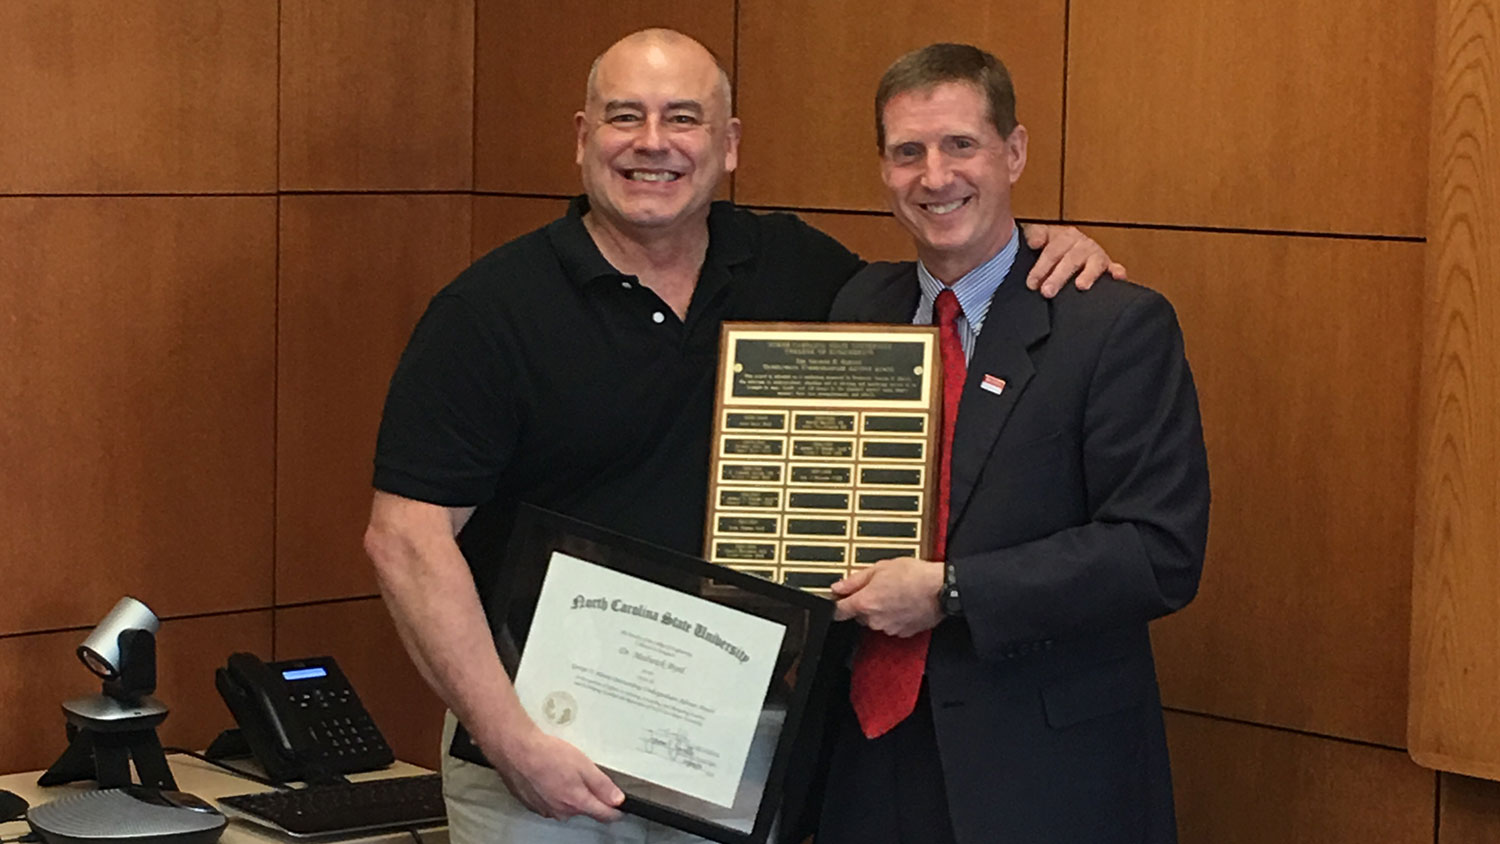 Dr. Jerome Lavelle, right, presents the George H. Blessis Outstanding Undergraduate Advisor Award to Dr. Medwick Byrd.